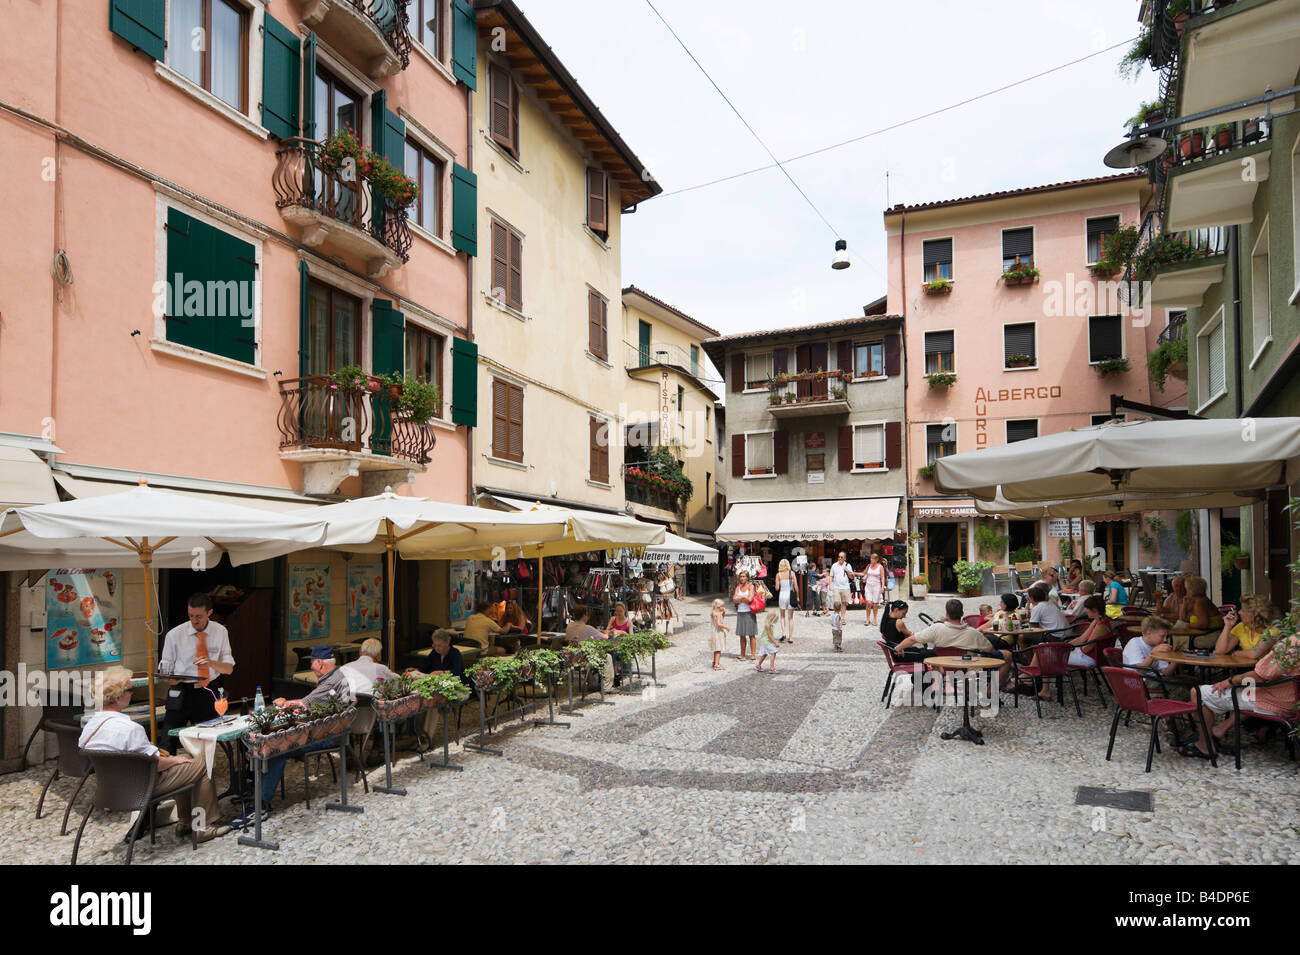 Street Cafes In The Centre Of The Old Town Malcesine Lake Garda Stock Photo Royalty Free